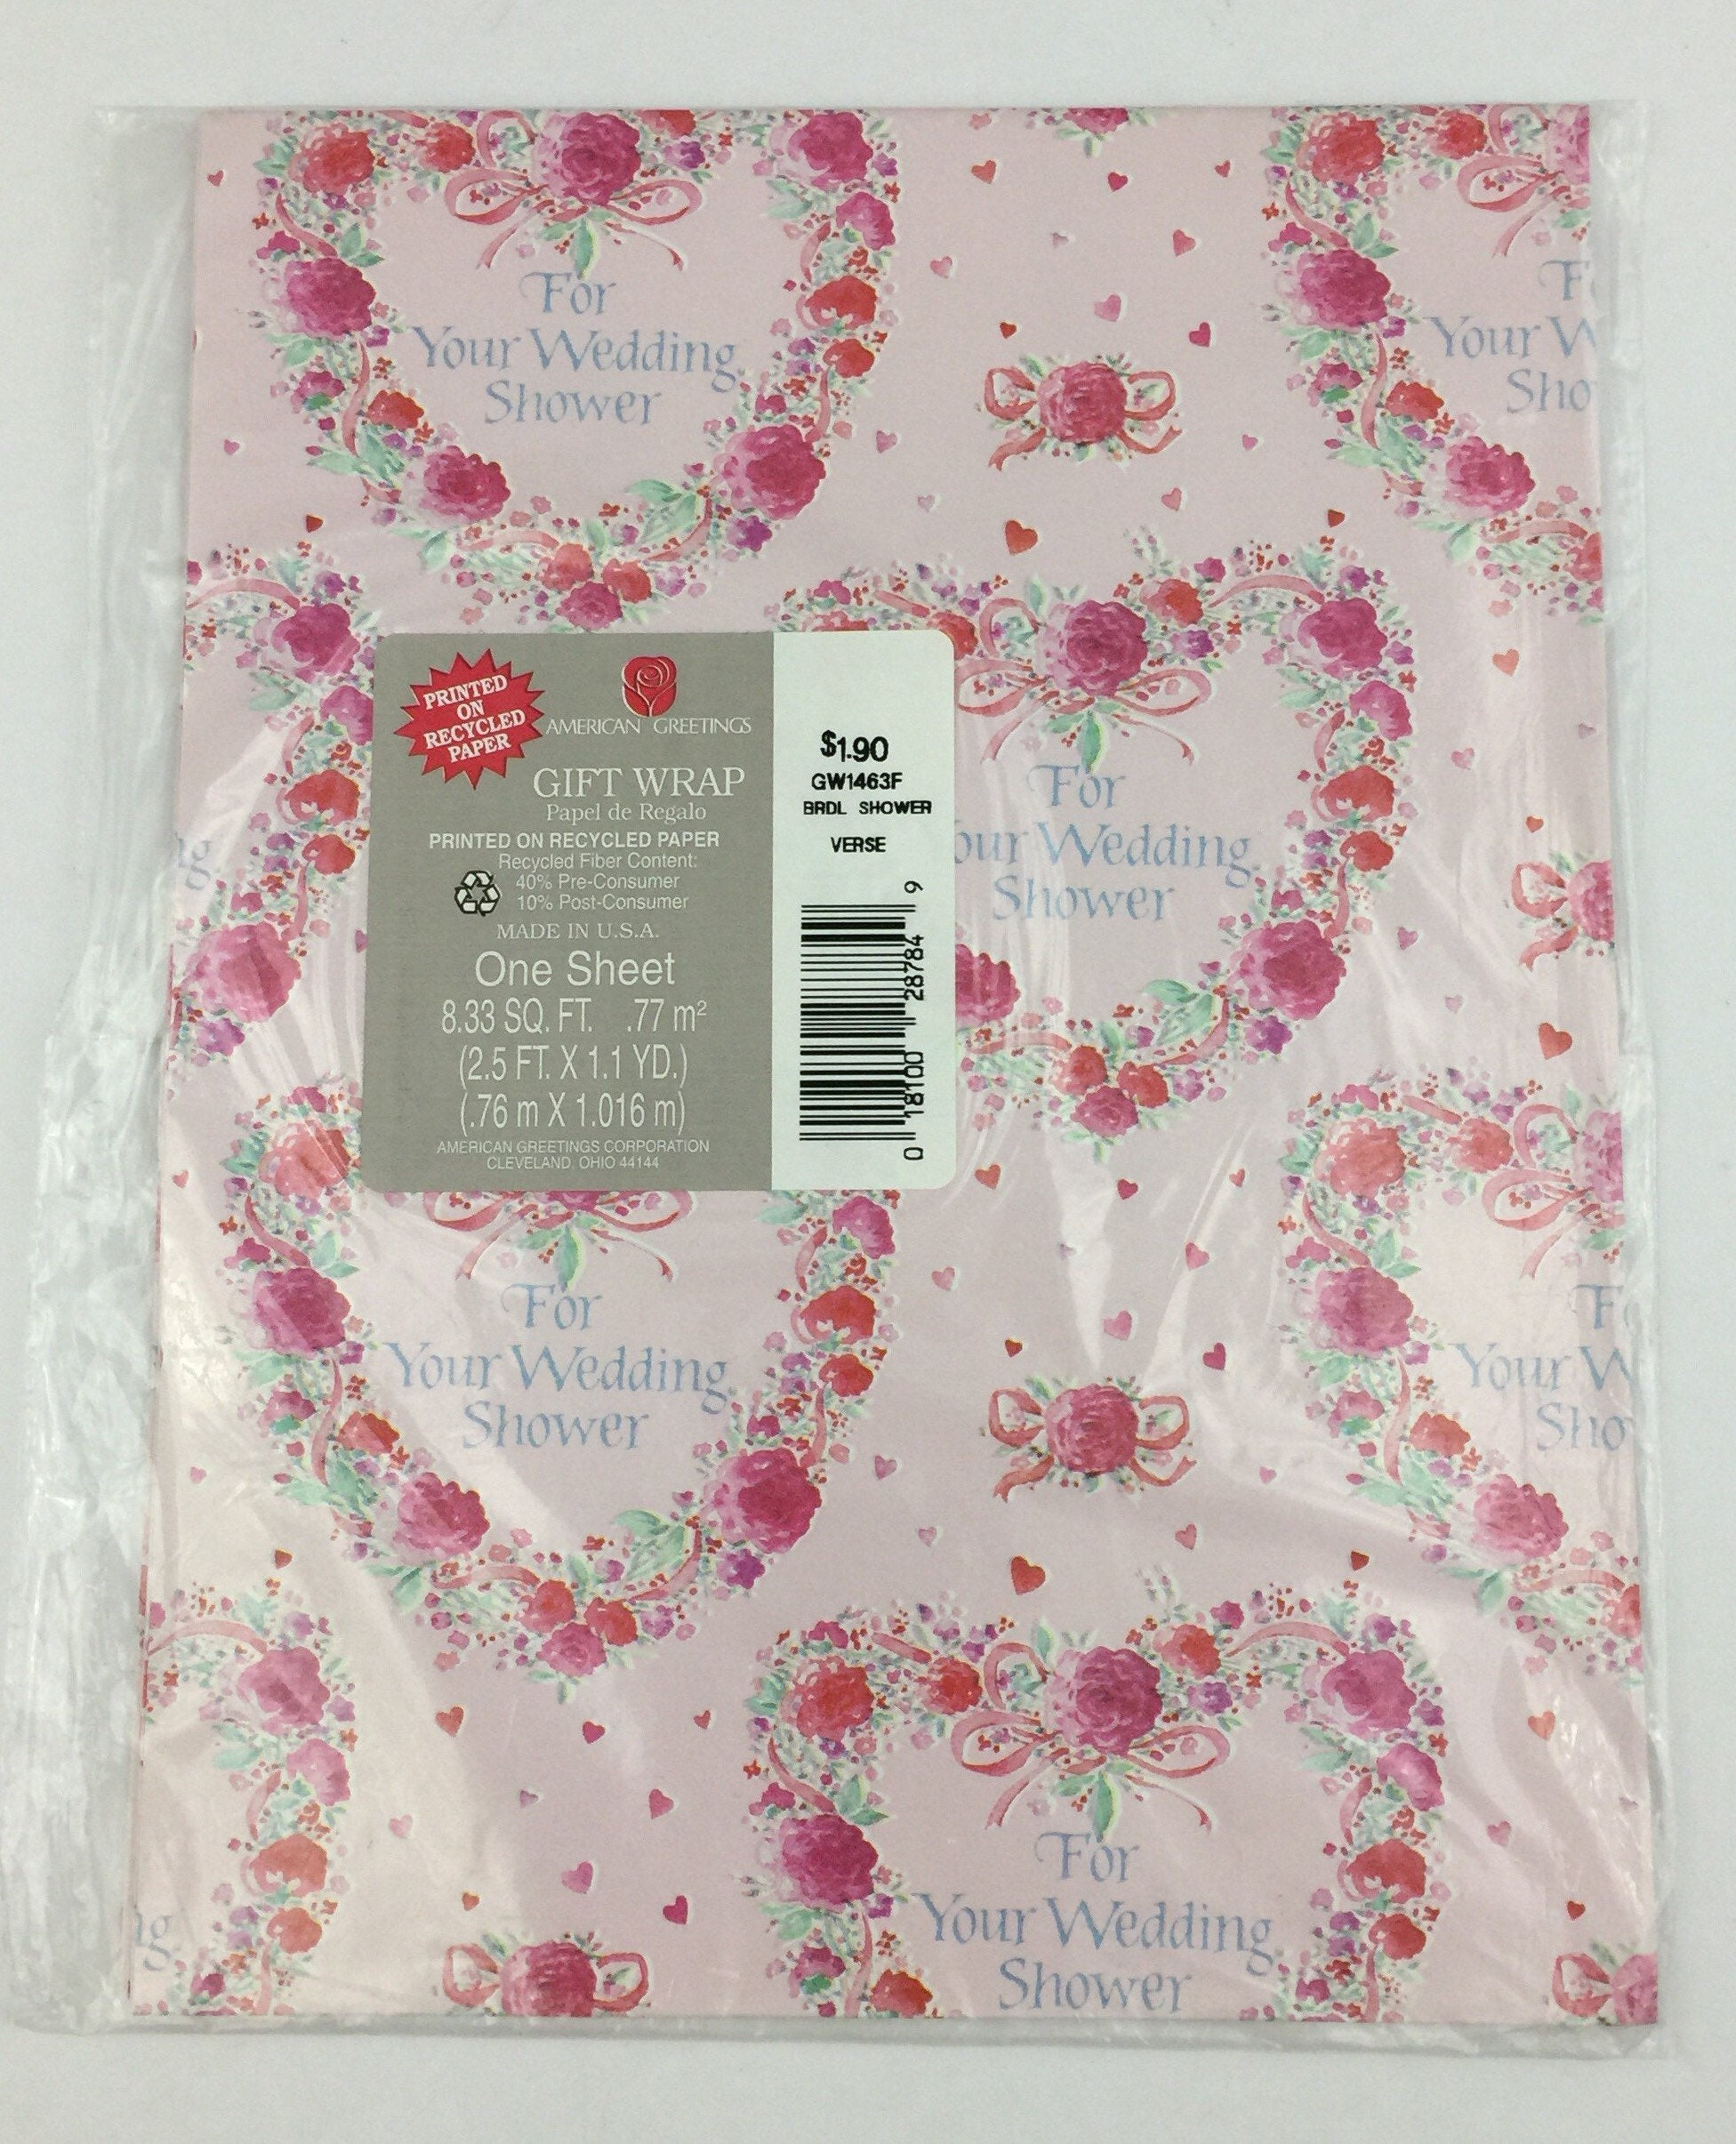 Vintage american greetings gift wrap wedding shower pink zoom m4hsunfo Images